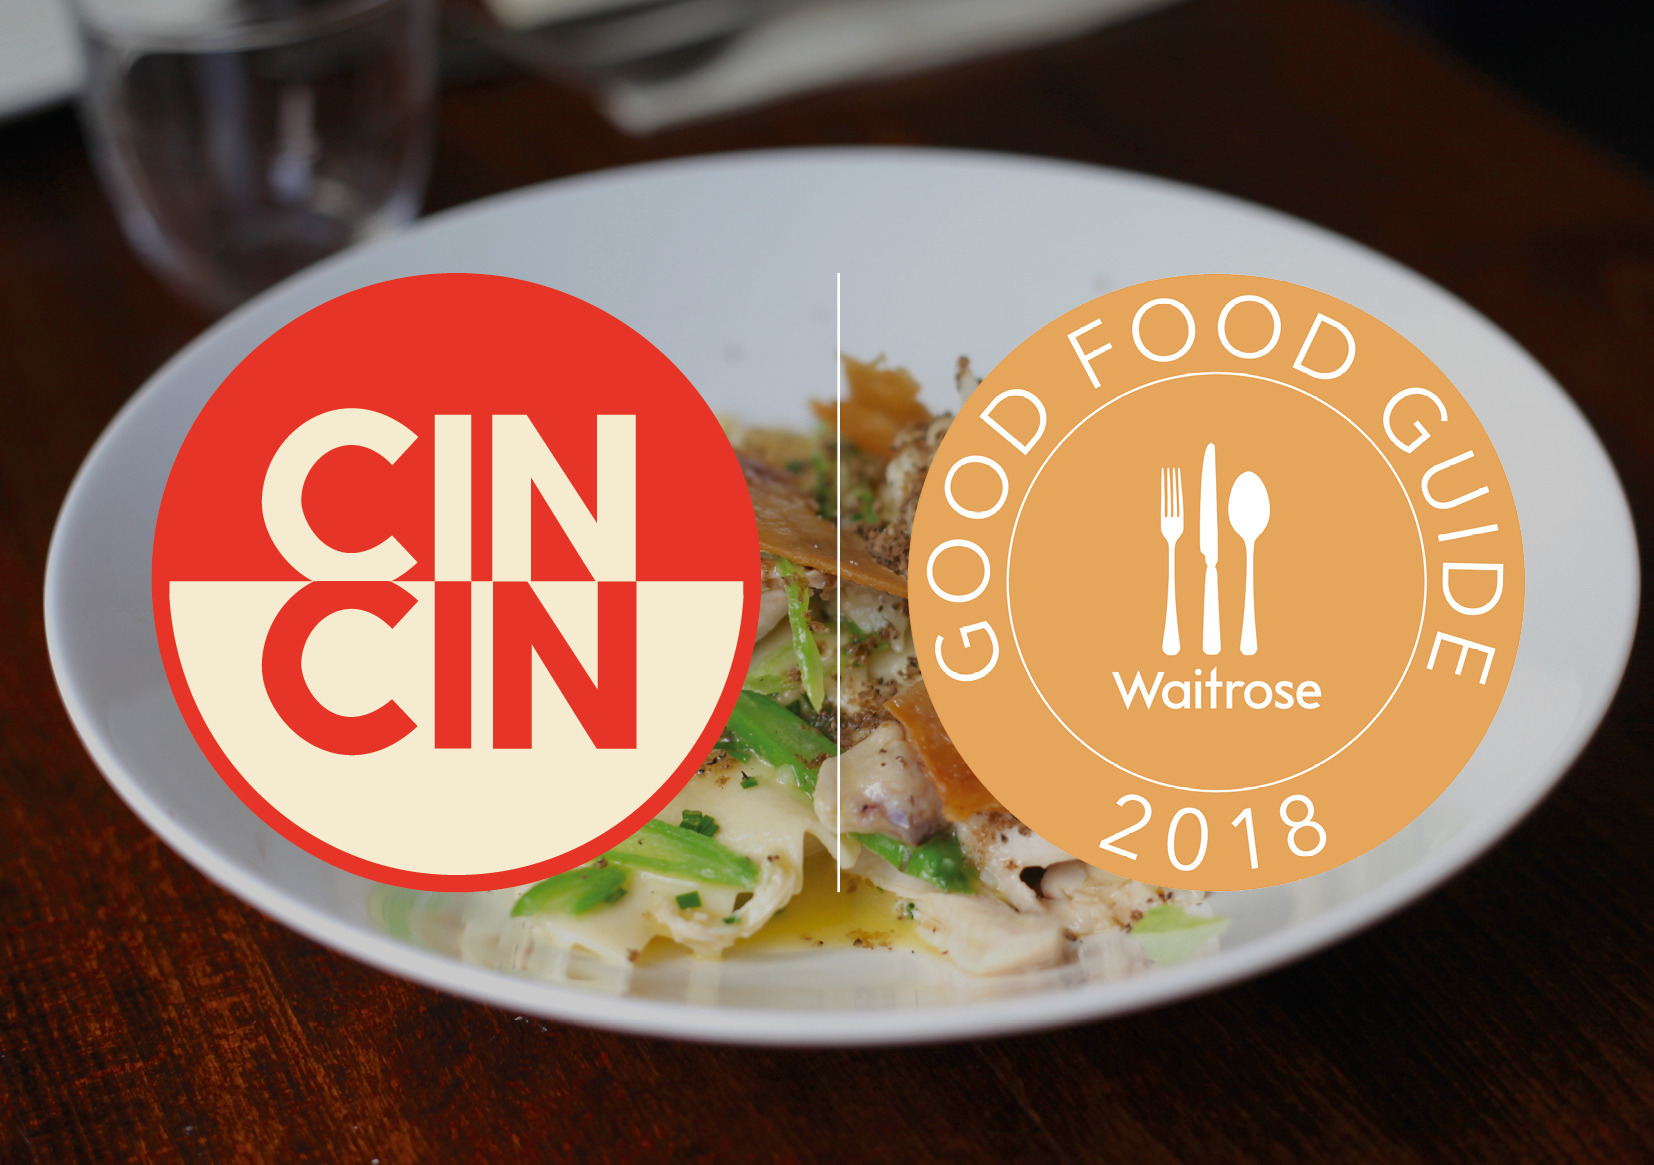 Cin Cin logo and Good Food Guide logo, with photo of dish behind